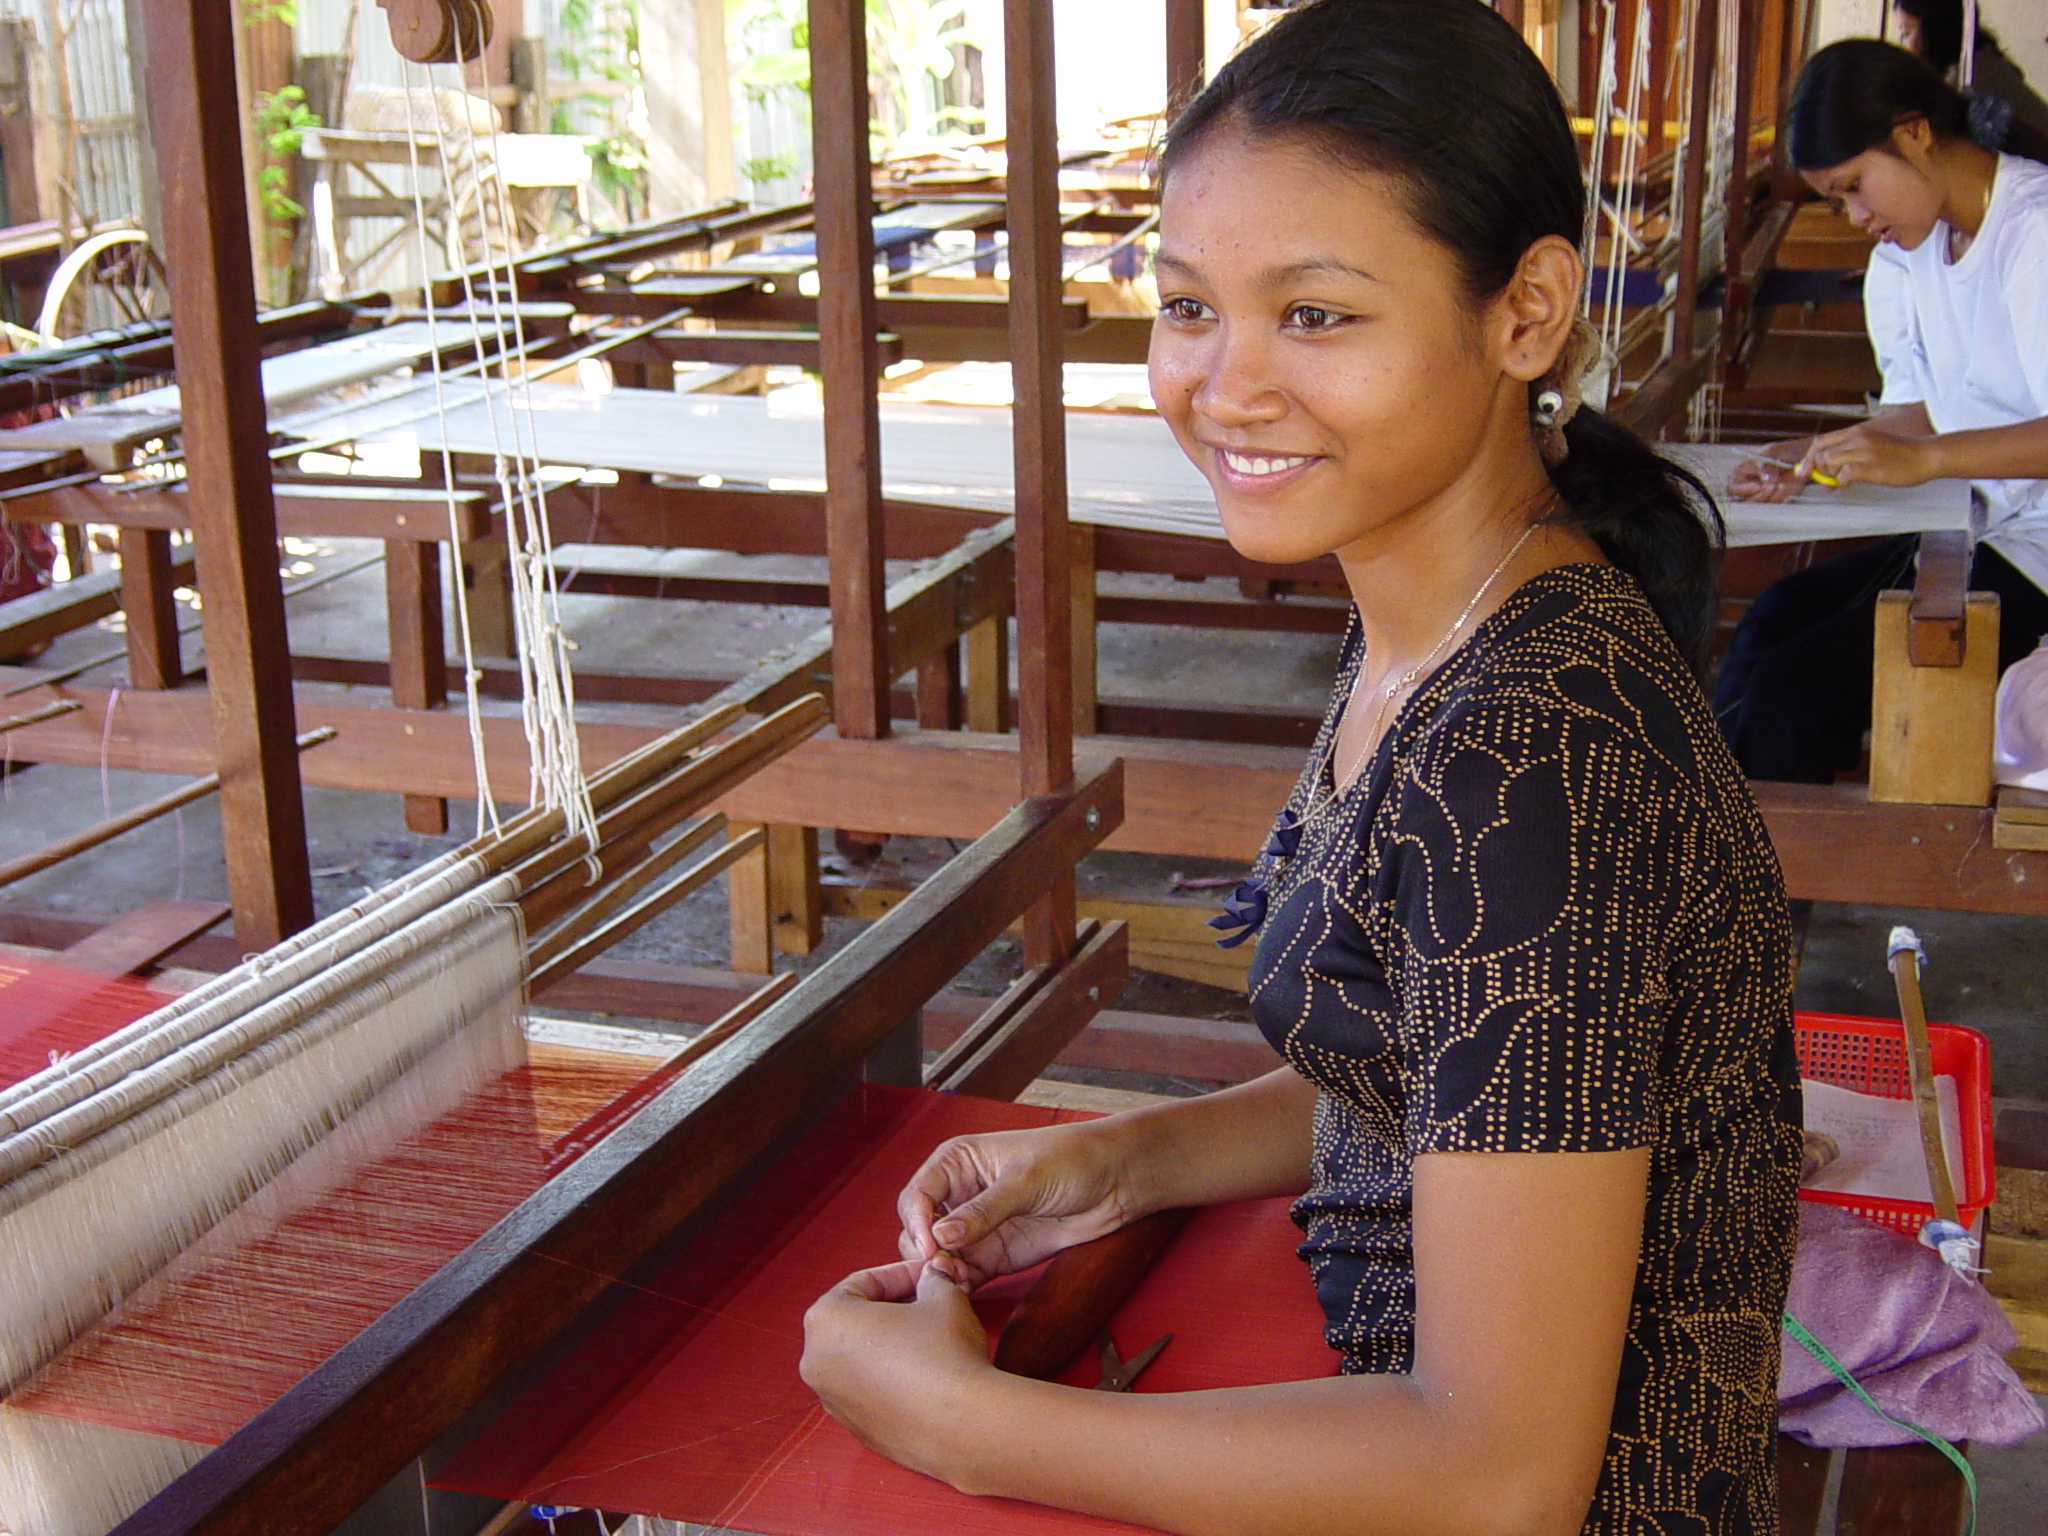 Mekong Blue, the social enterprise established by the Stung Treng Women's Development Centre to provide training and employment opportunities for women.